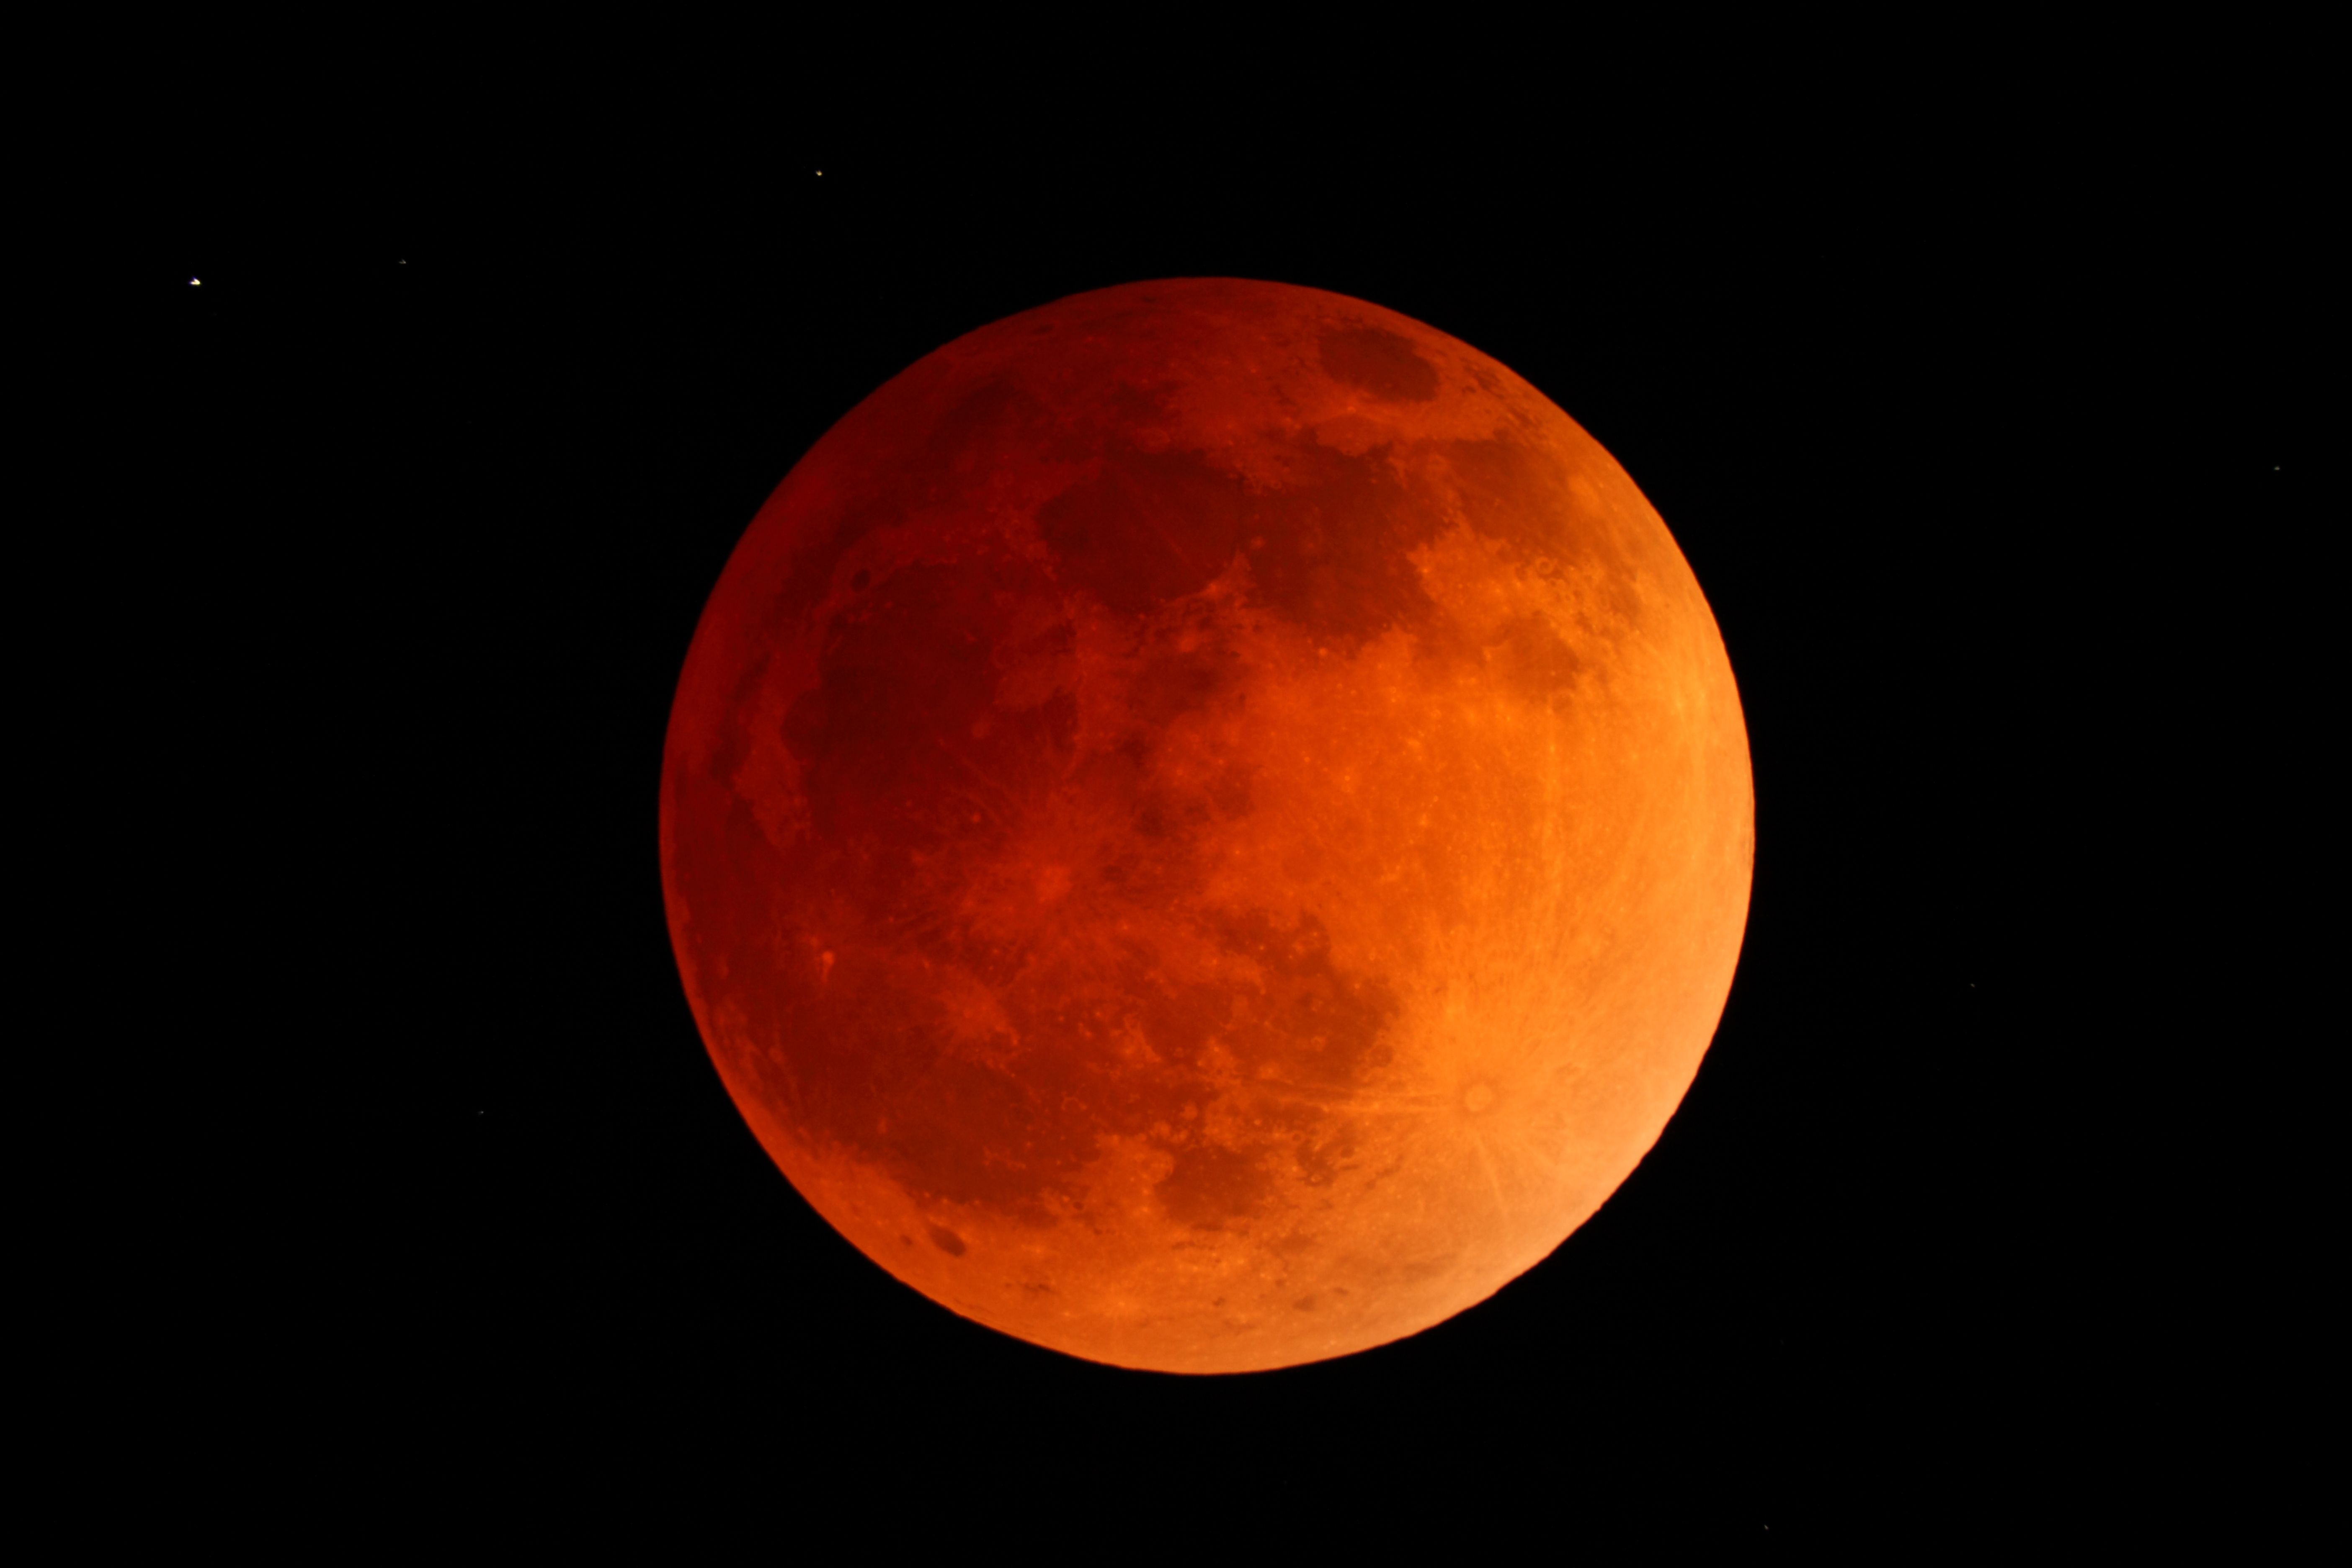 blood moon eclipse and pregnancy - photo #21